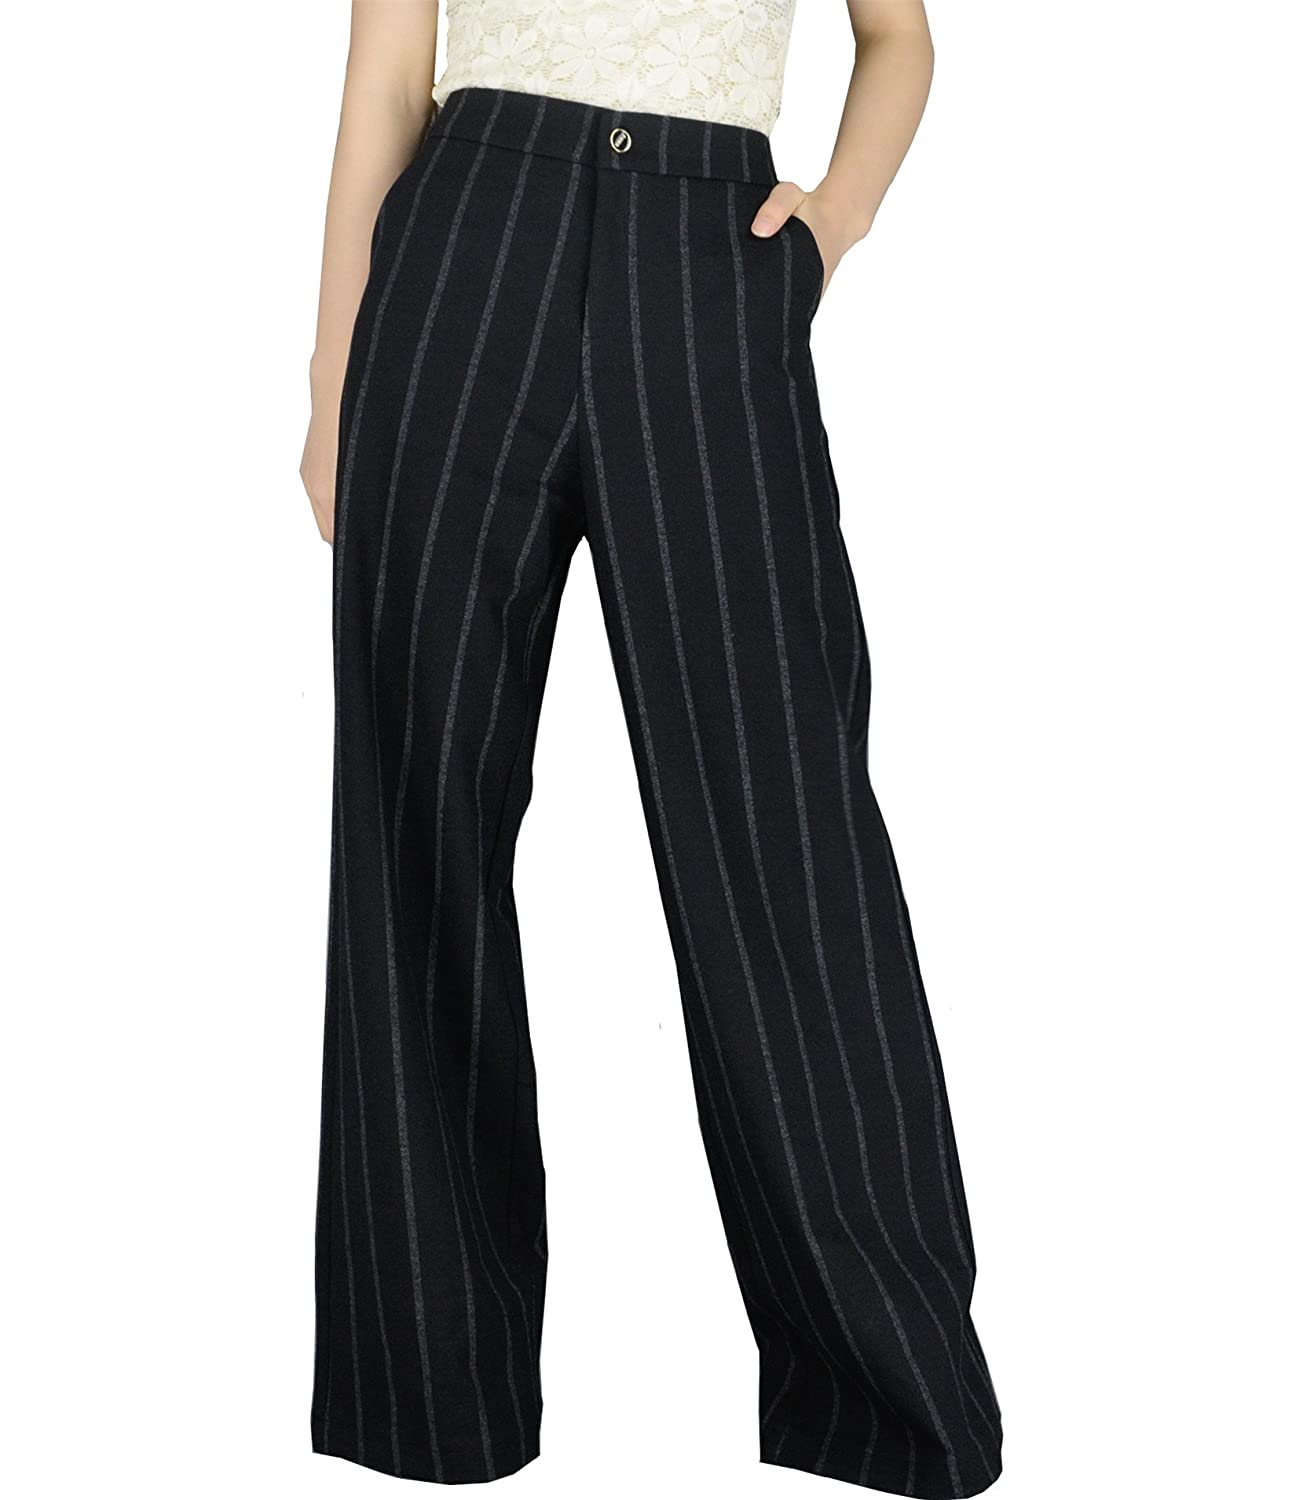 YSJ Women's High Waisted Wide Leg Long Palazzo Pants 42.5-inch Plus Size Available SEM656